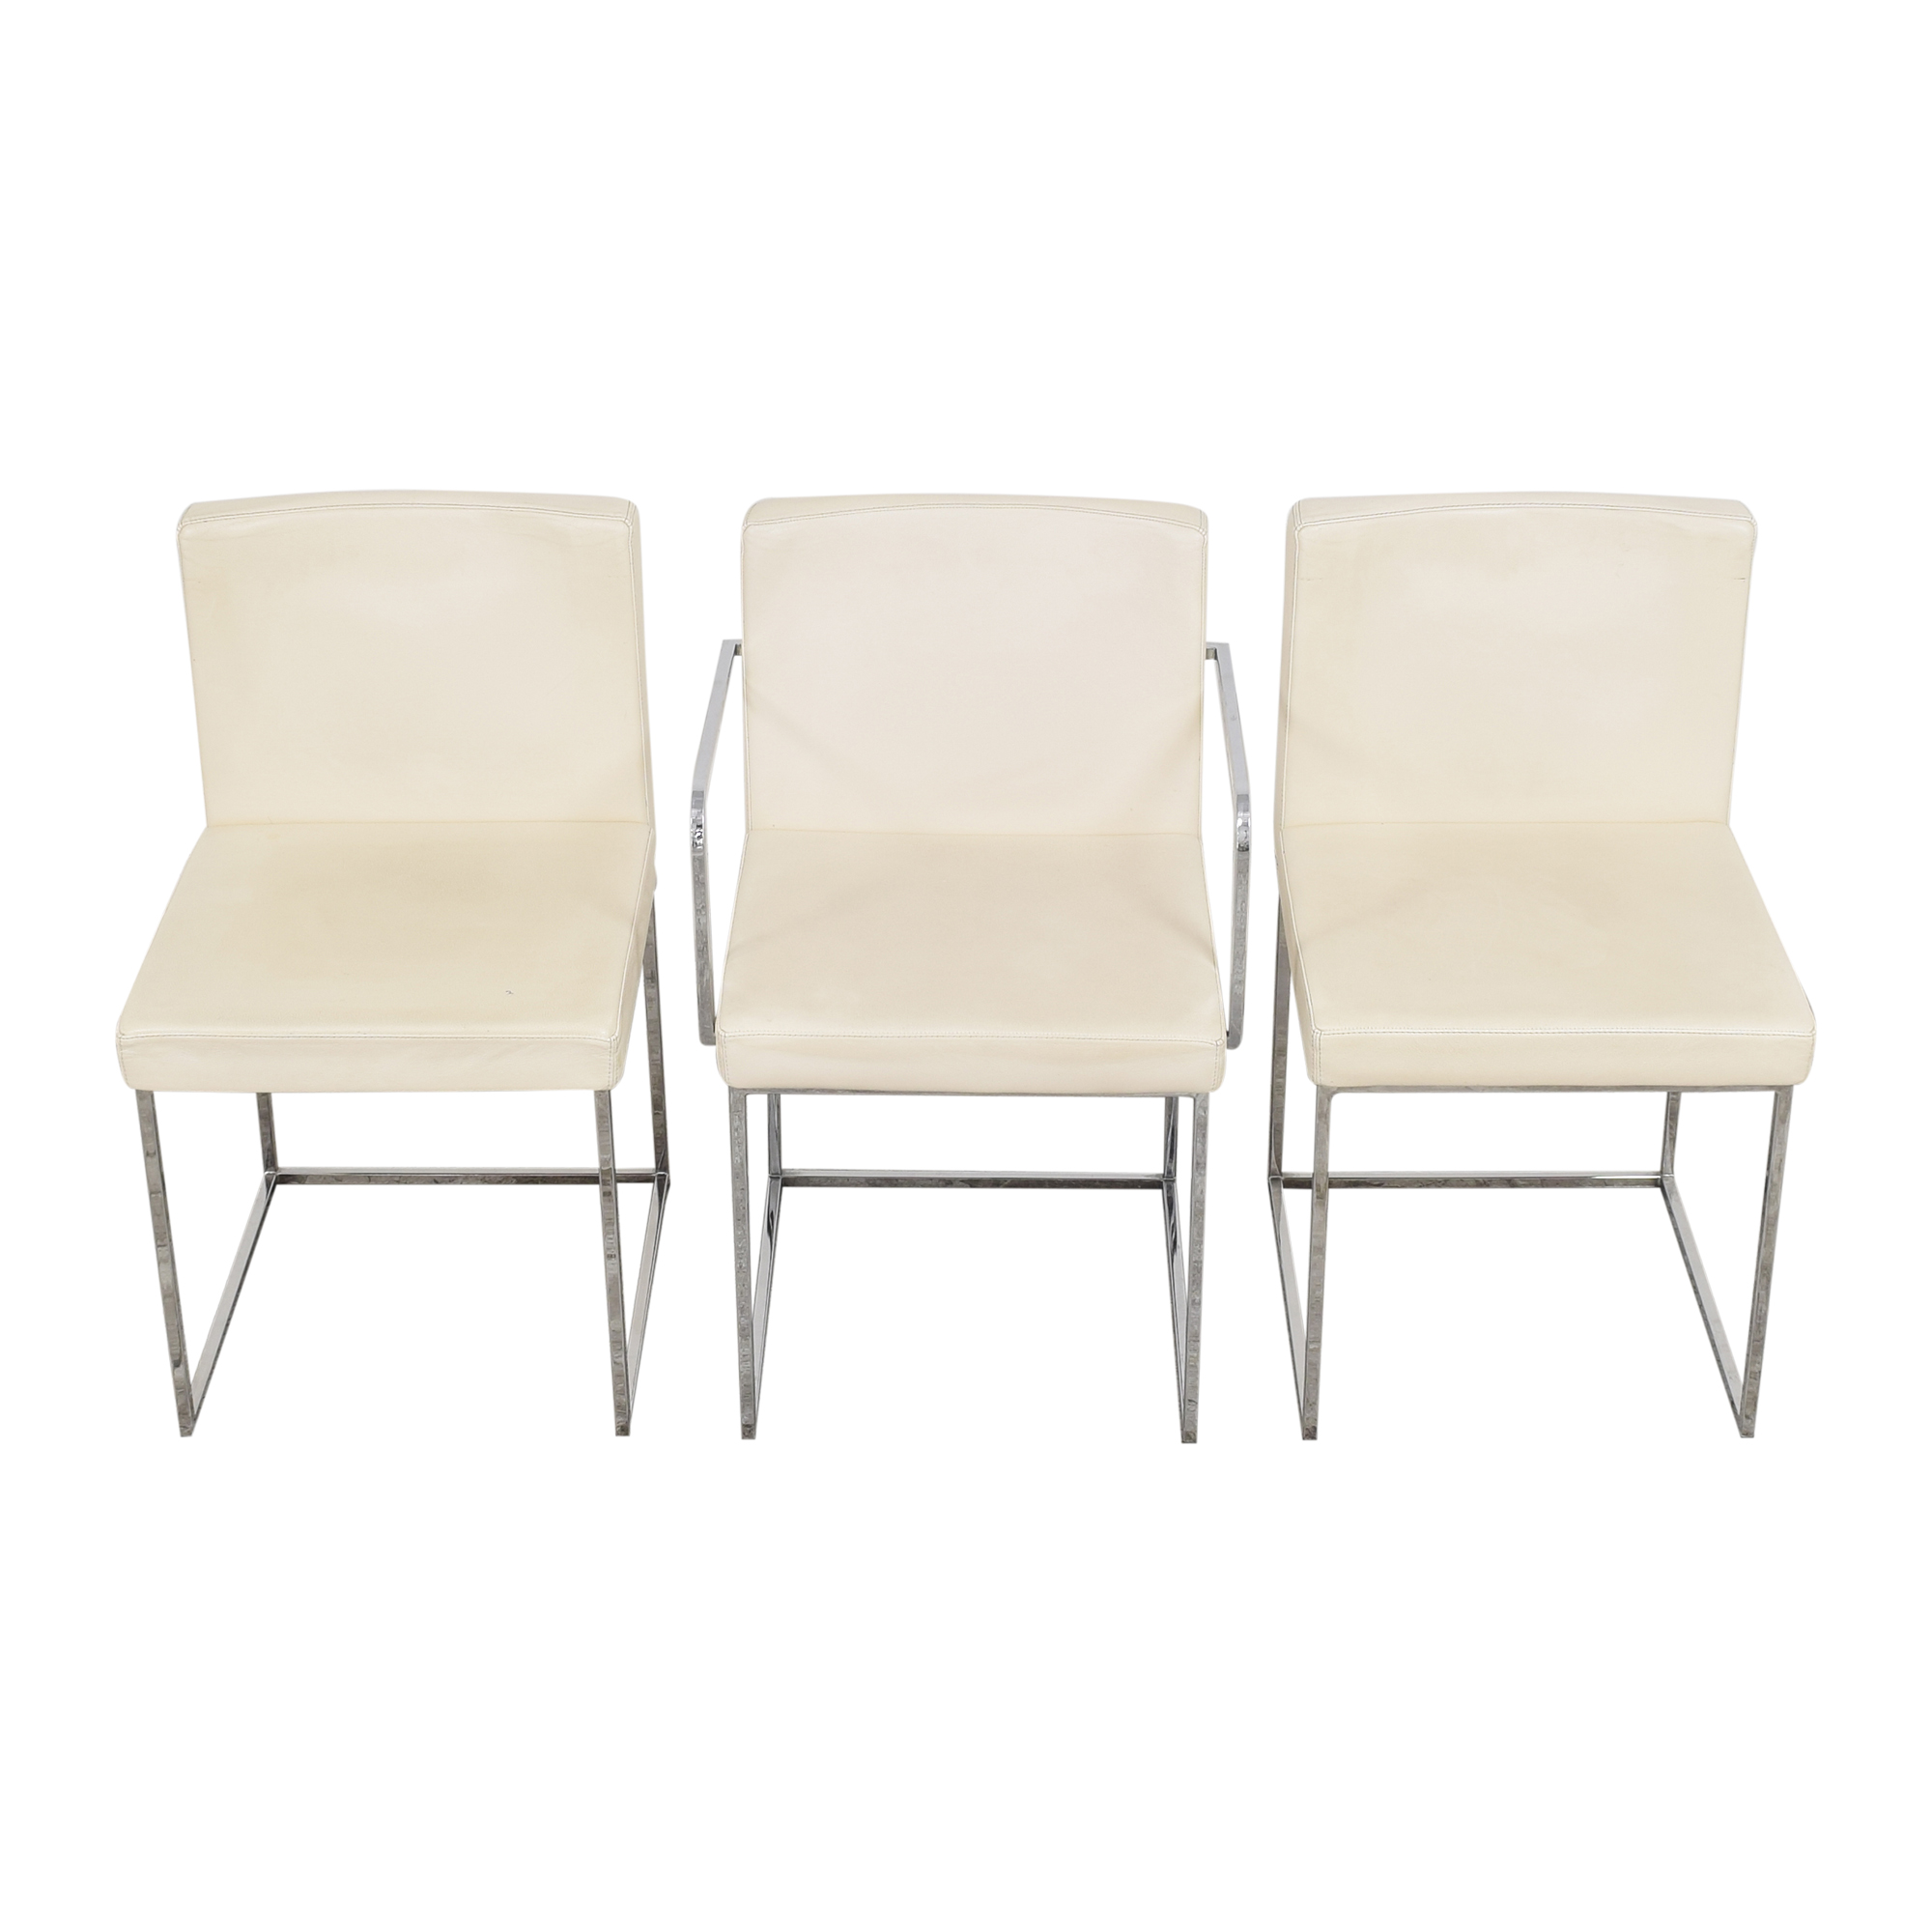 buy Calligaris Even Plus Chairs Calligaris Chairs